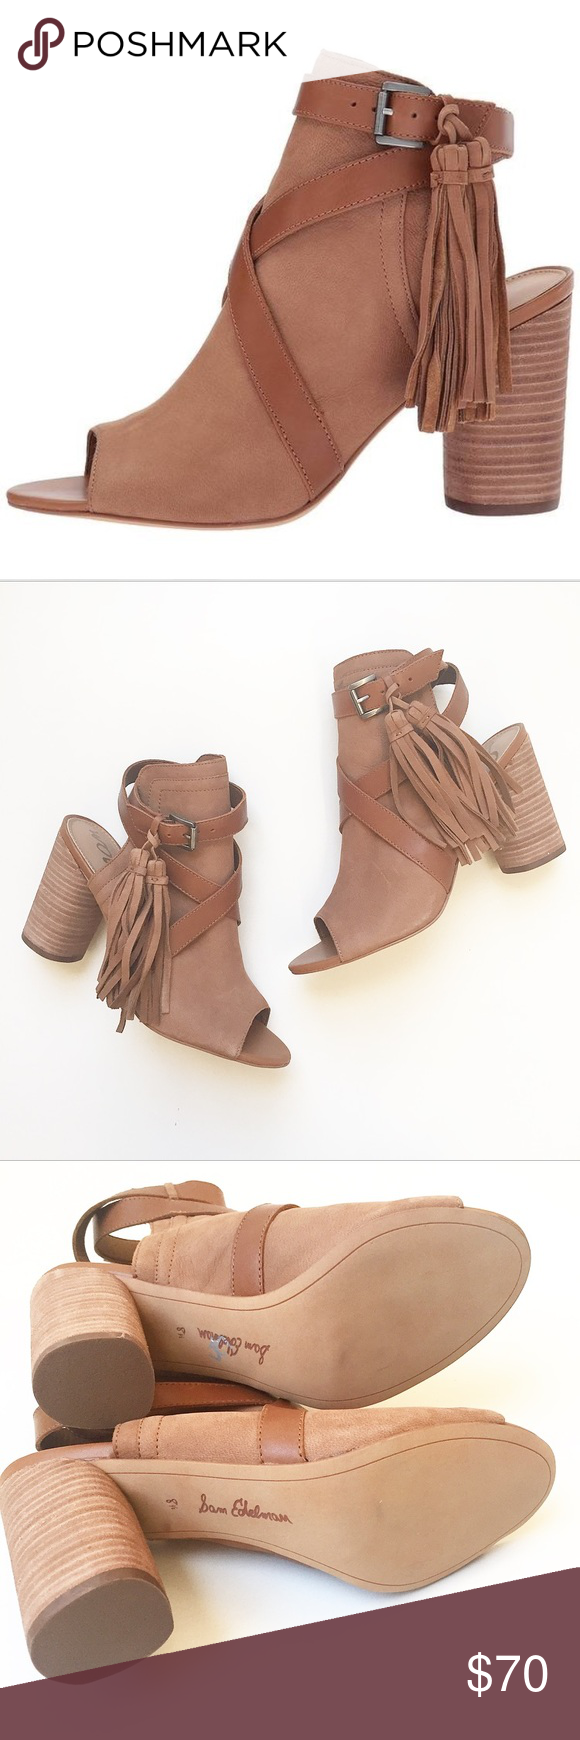 441ed6ff92d3bf Sam Edelman Vermont Peep Toe Tassel Booties Size 8 1 2 new without box Sam